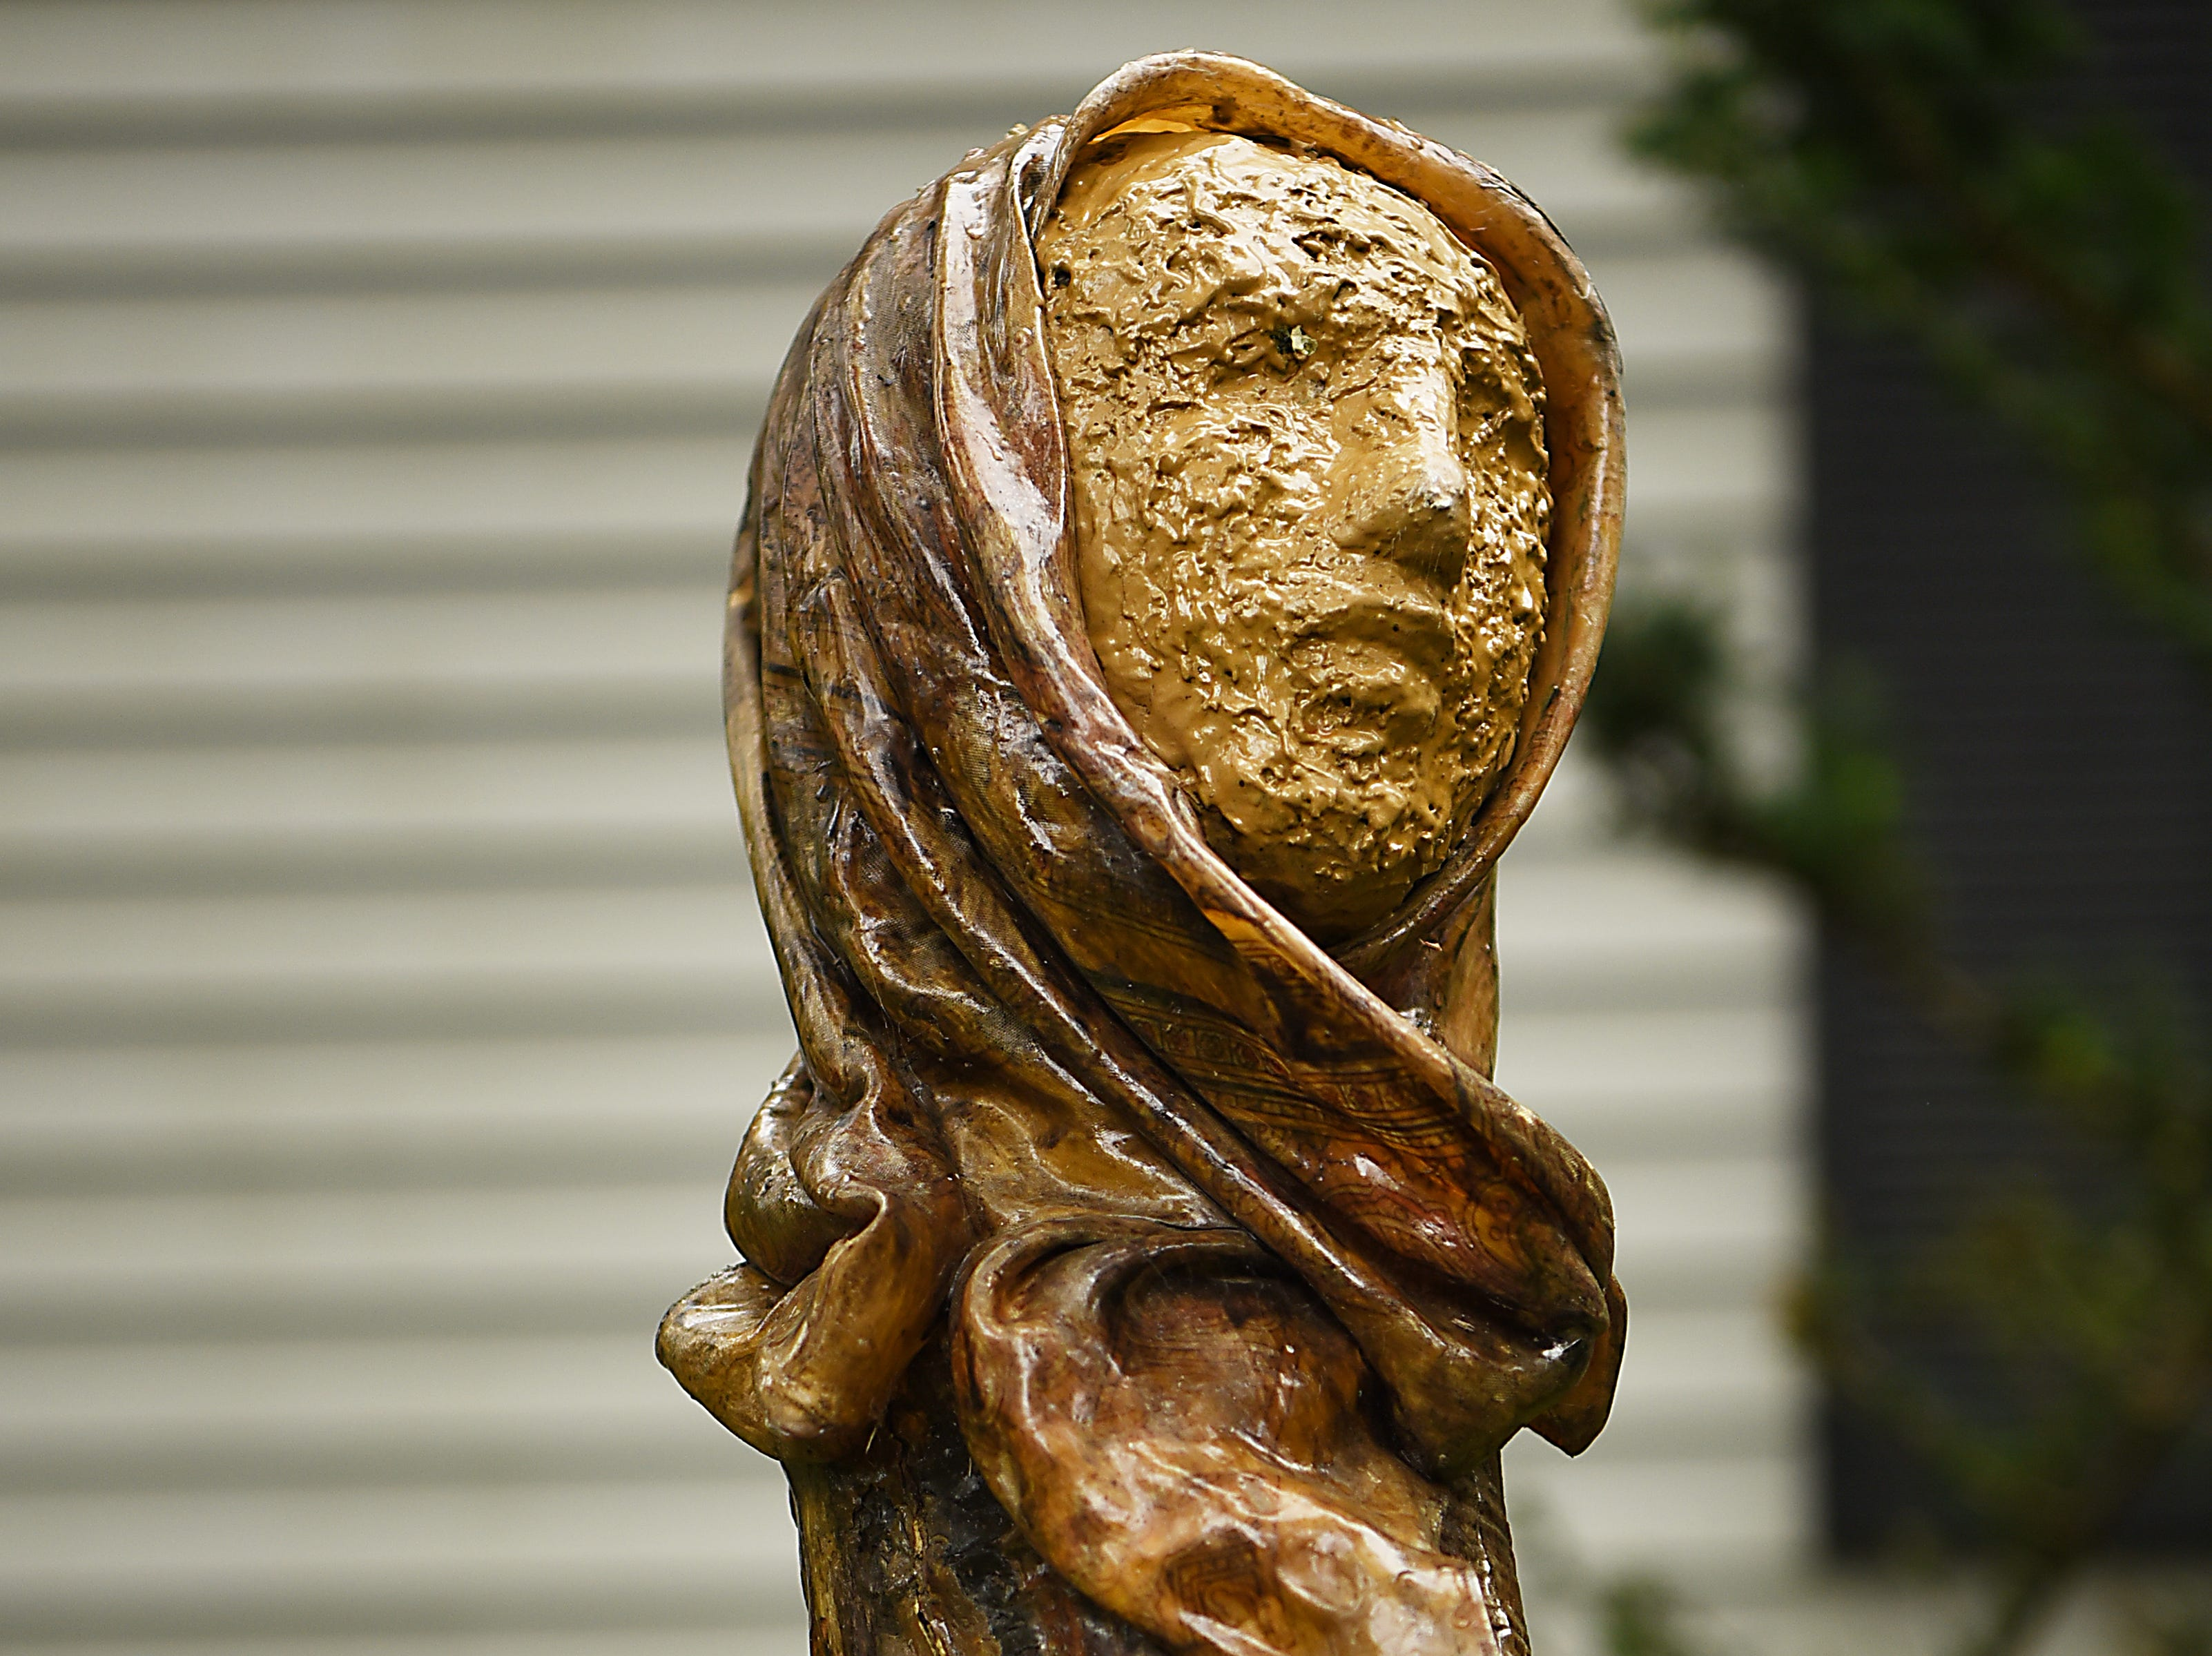 A sculpture by Judith Peck shown at her home in Mahwah on Wednesday September 12, 2018.